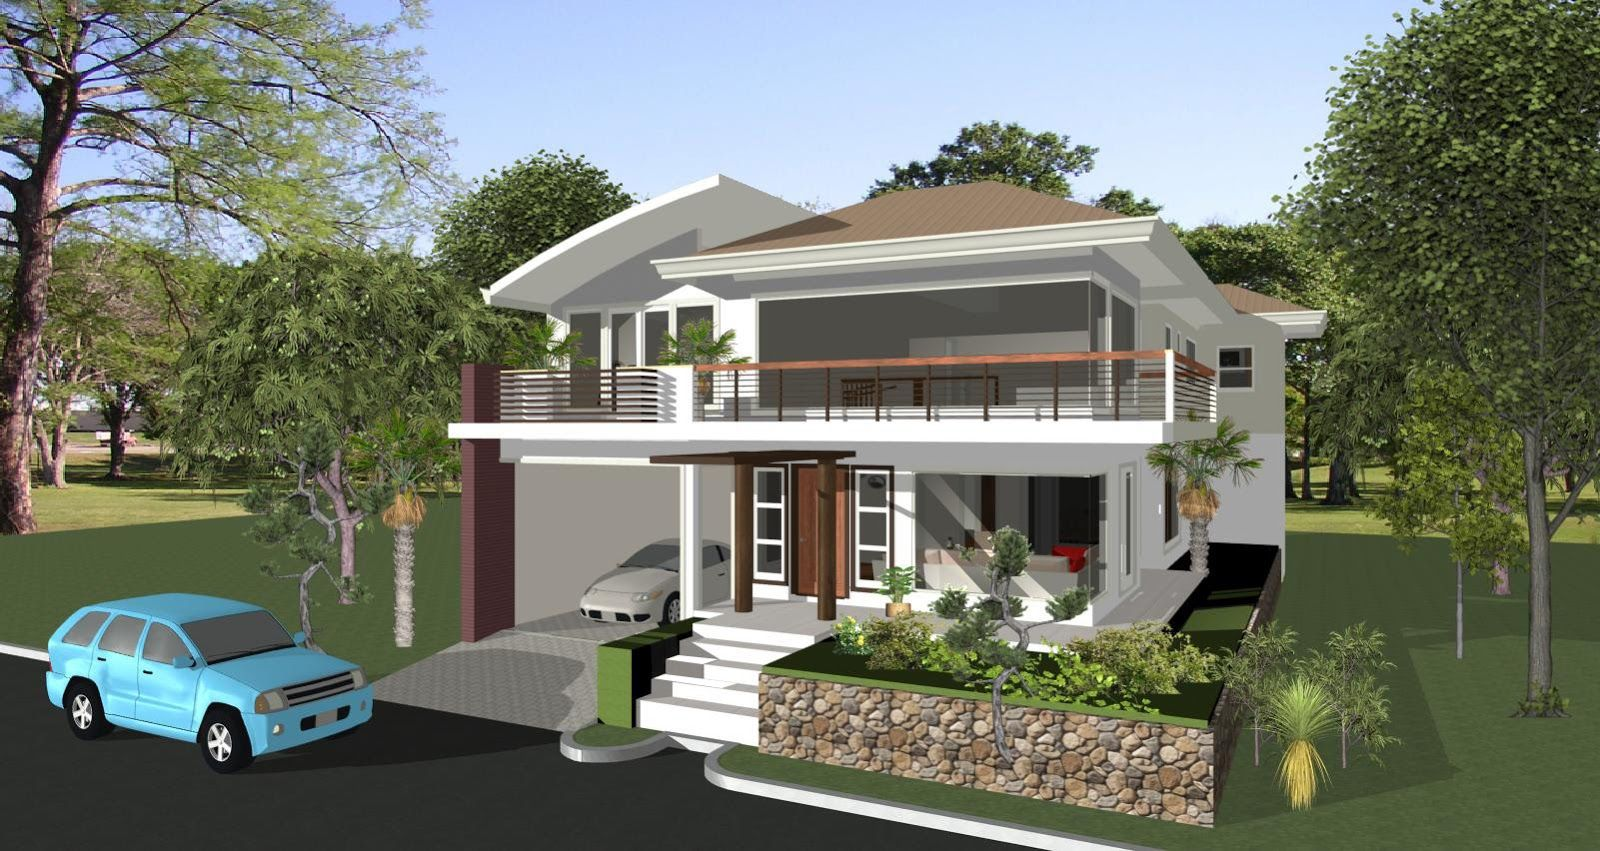 House Designs Iloilo Philippine Home Designs Philippines House Design  Simply Elegant Home Designs Unique Small House Plan